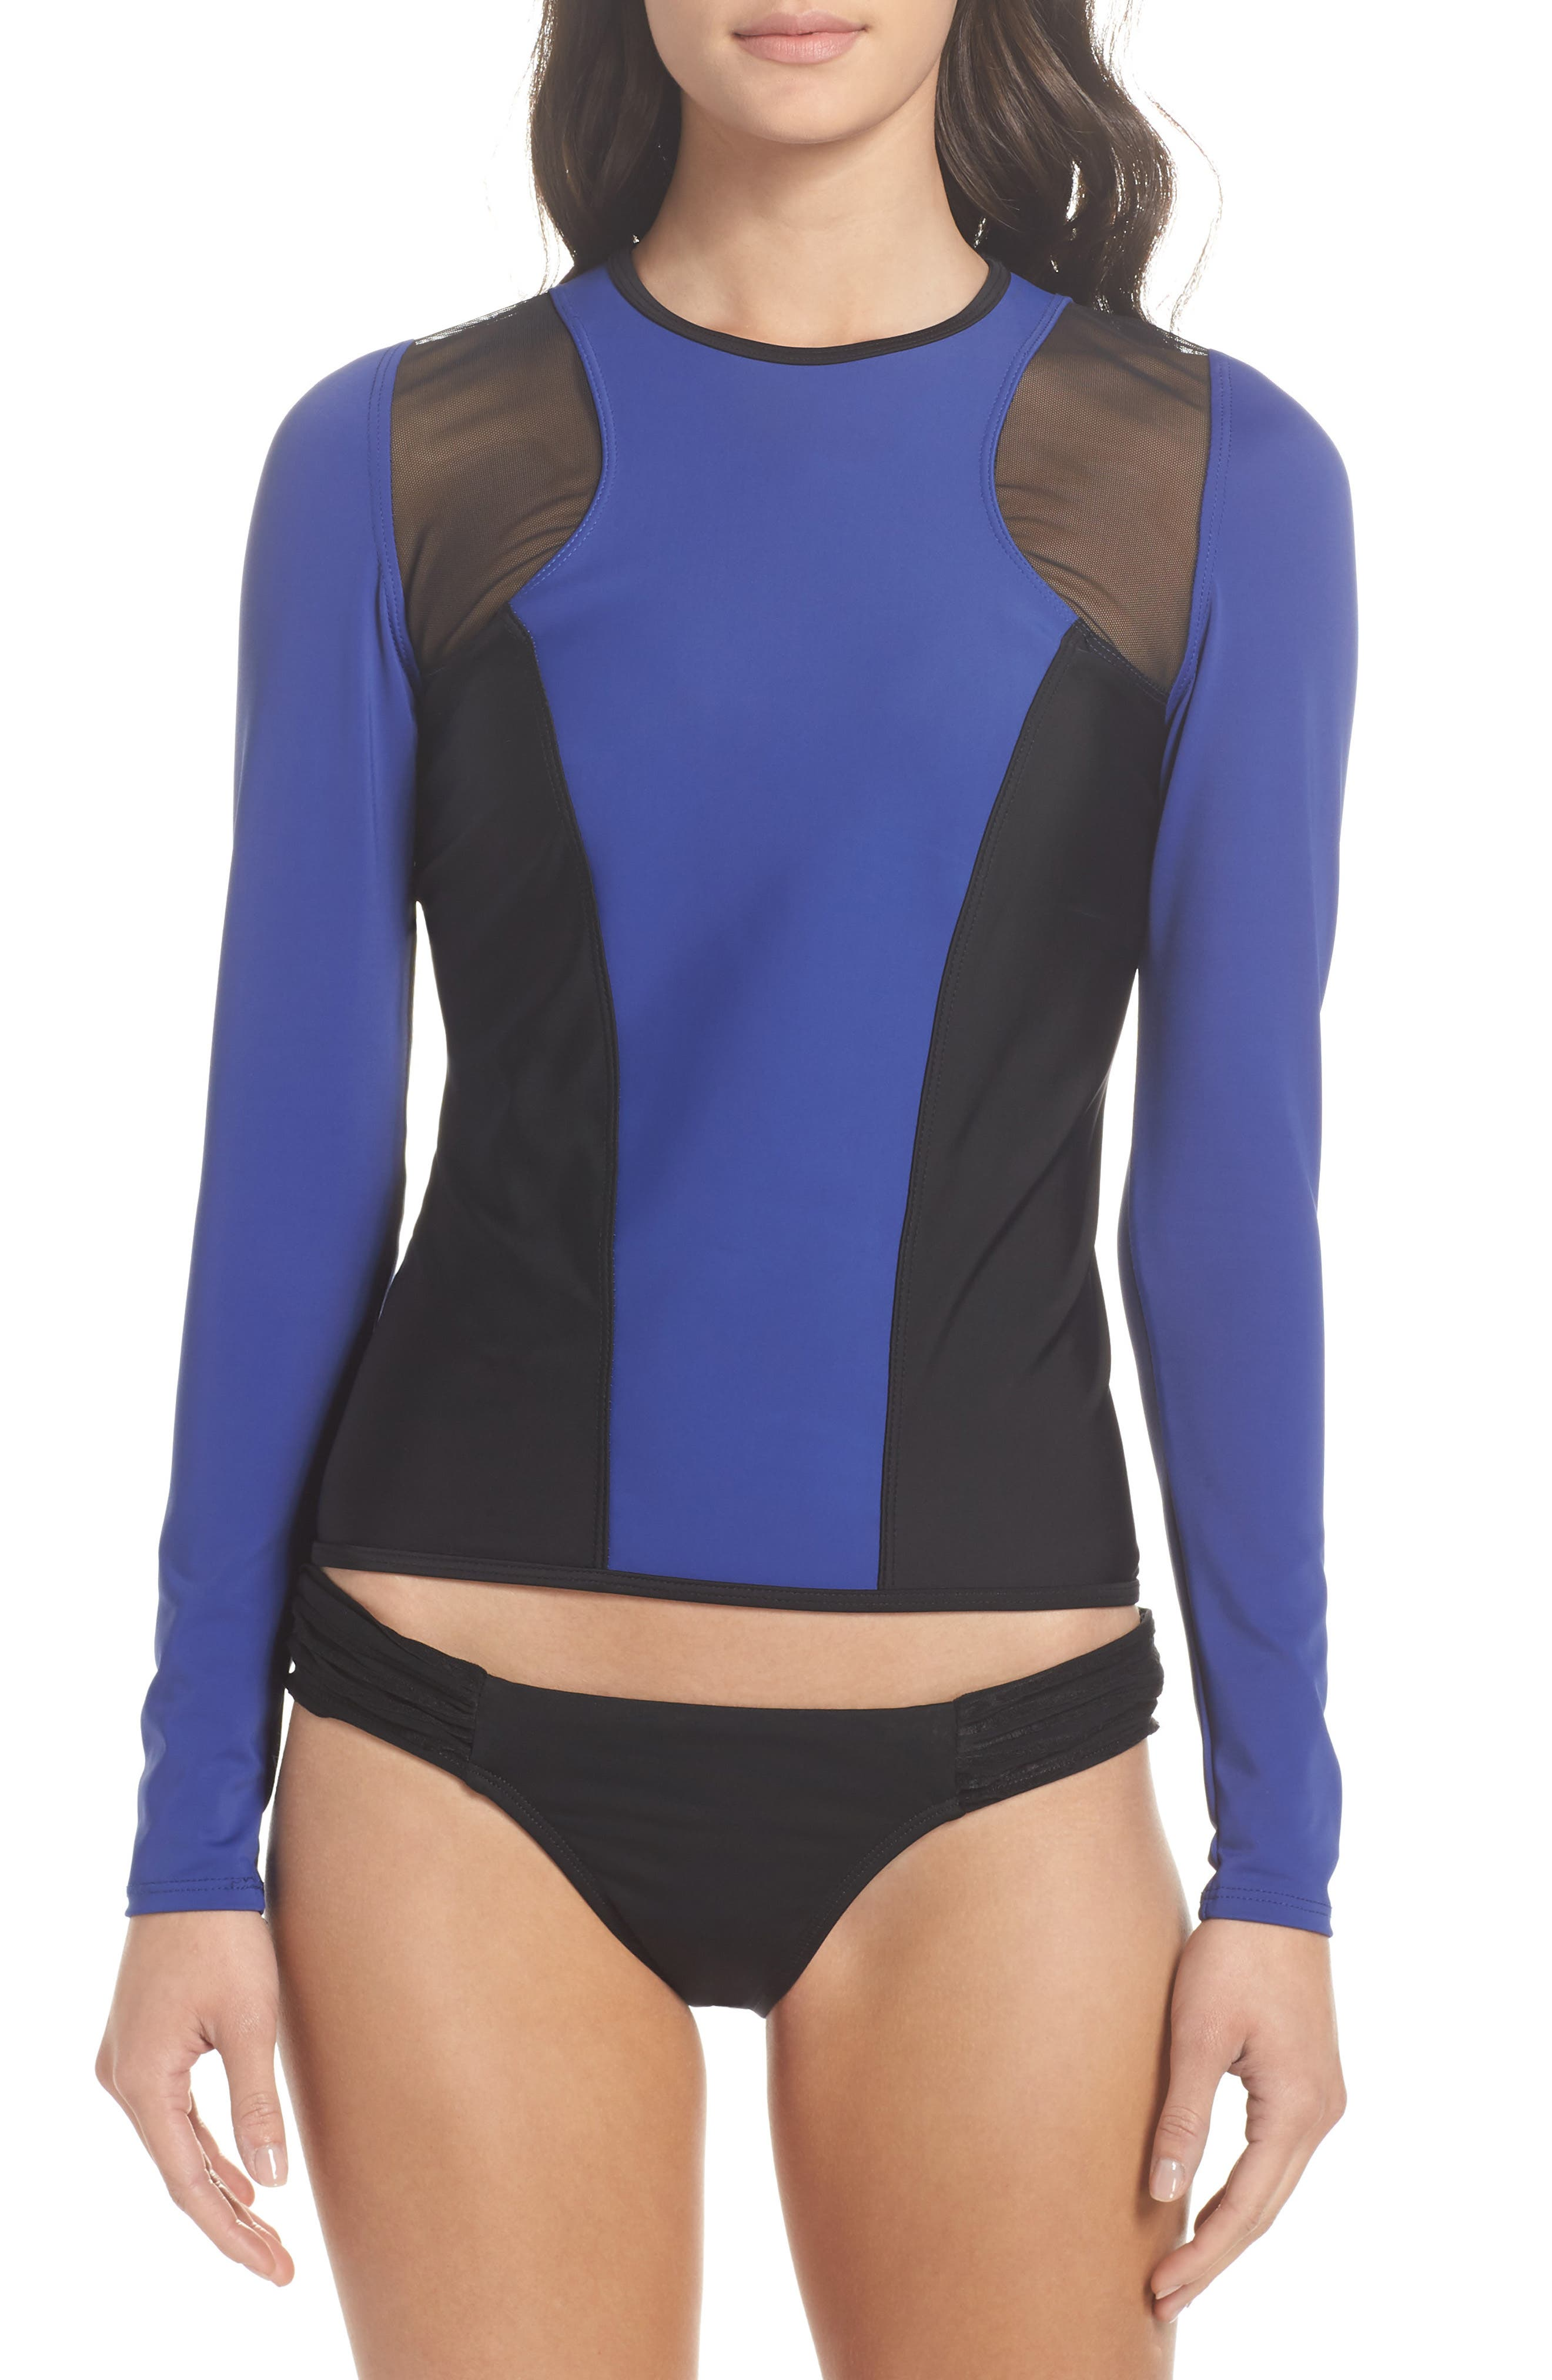 Chromat Hydro Rash Guard